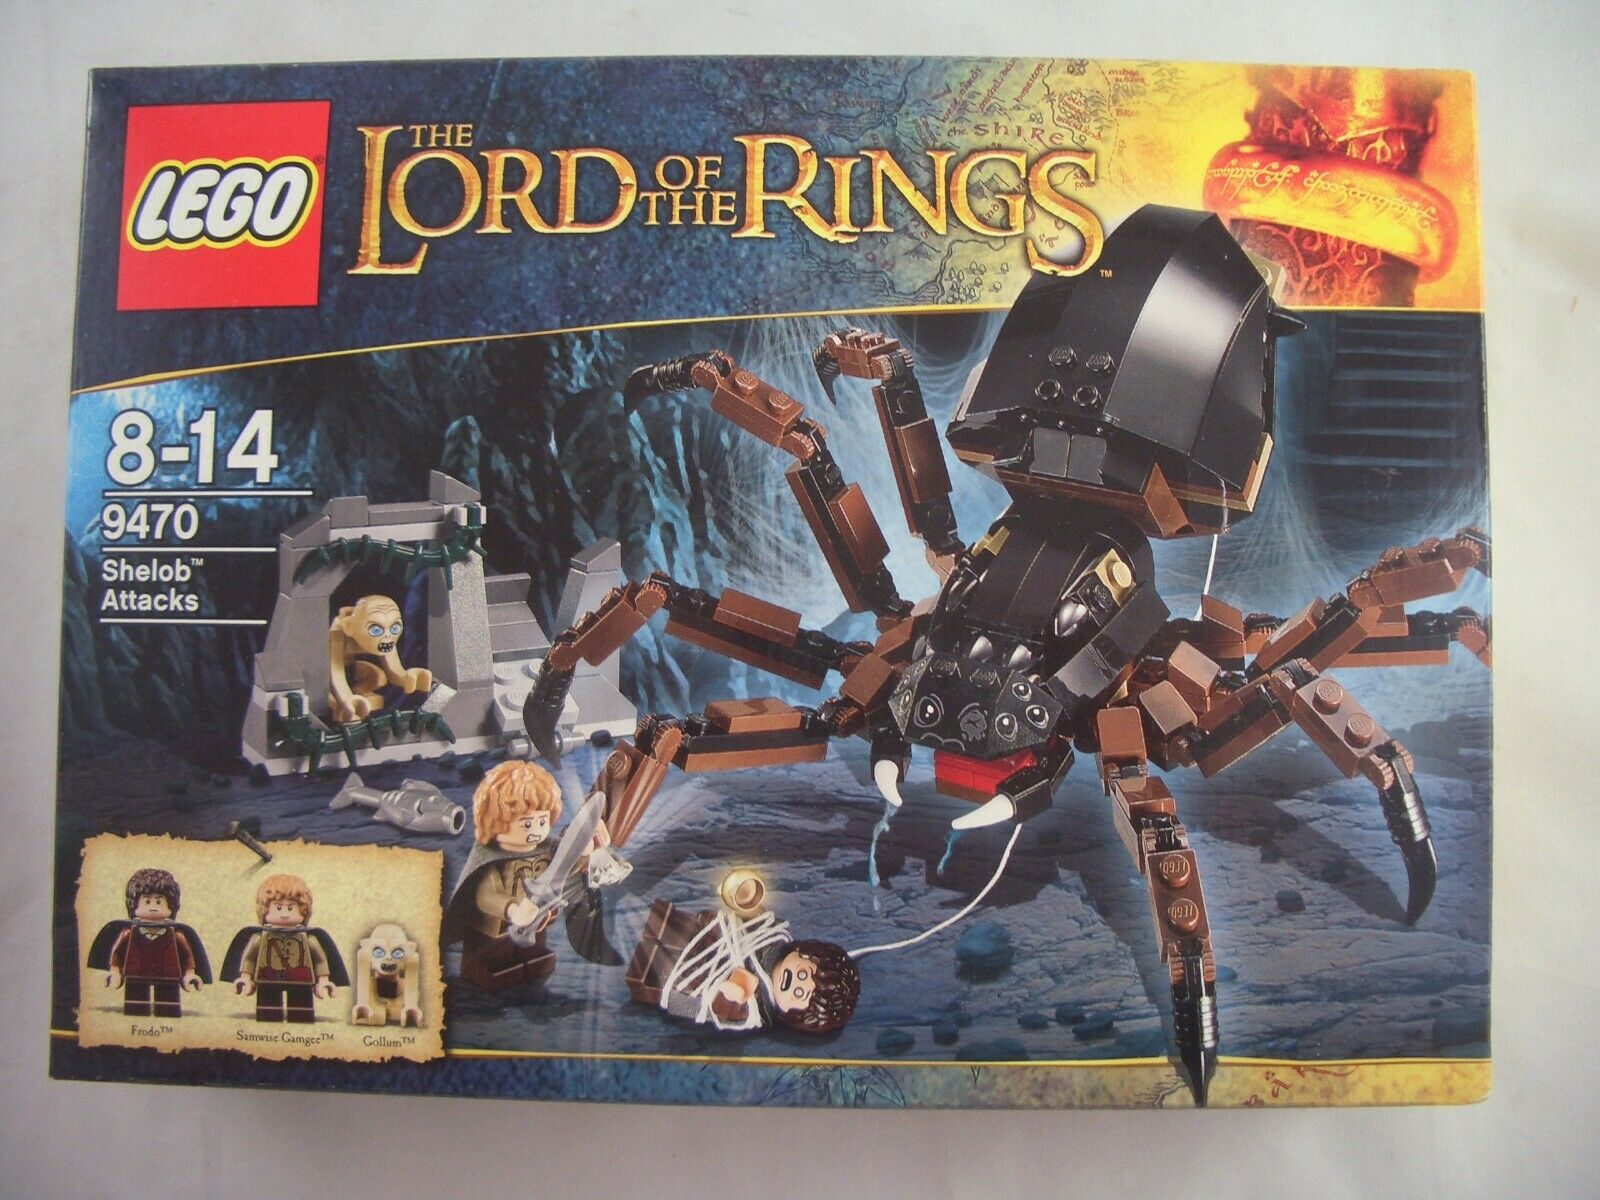 LEGO The Lord of the Rings 9470 Shelob Attacks New Sealed